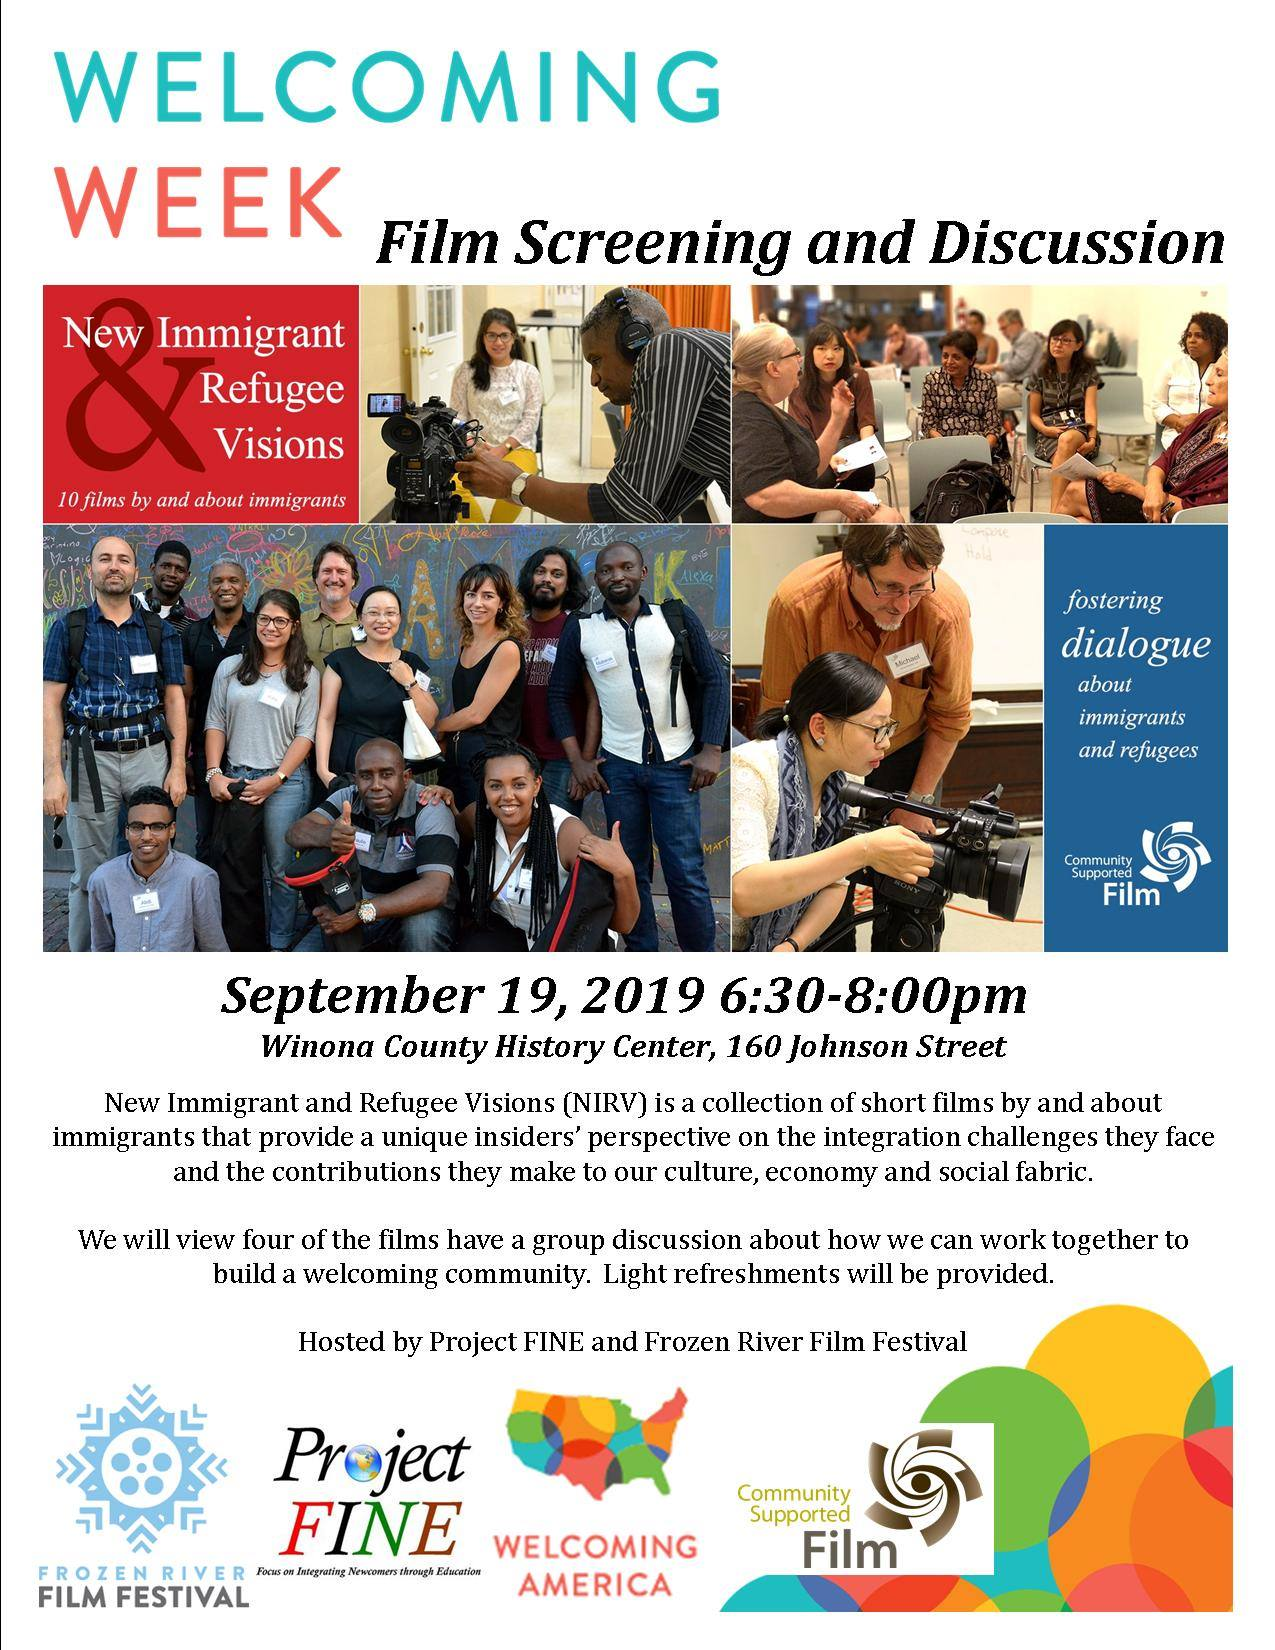 Winona Daily News: New Immigrant and Refugee Visions Film Screening Set for Thursday